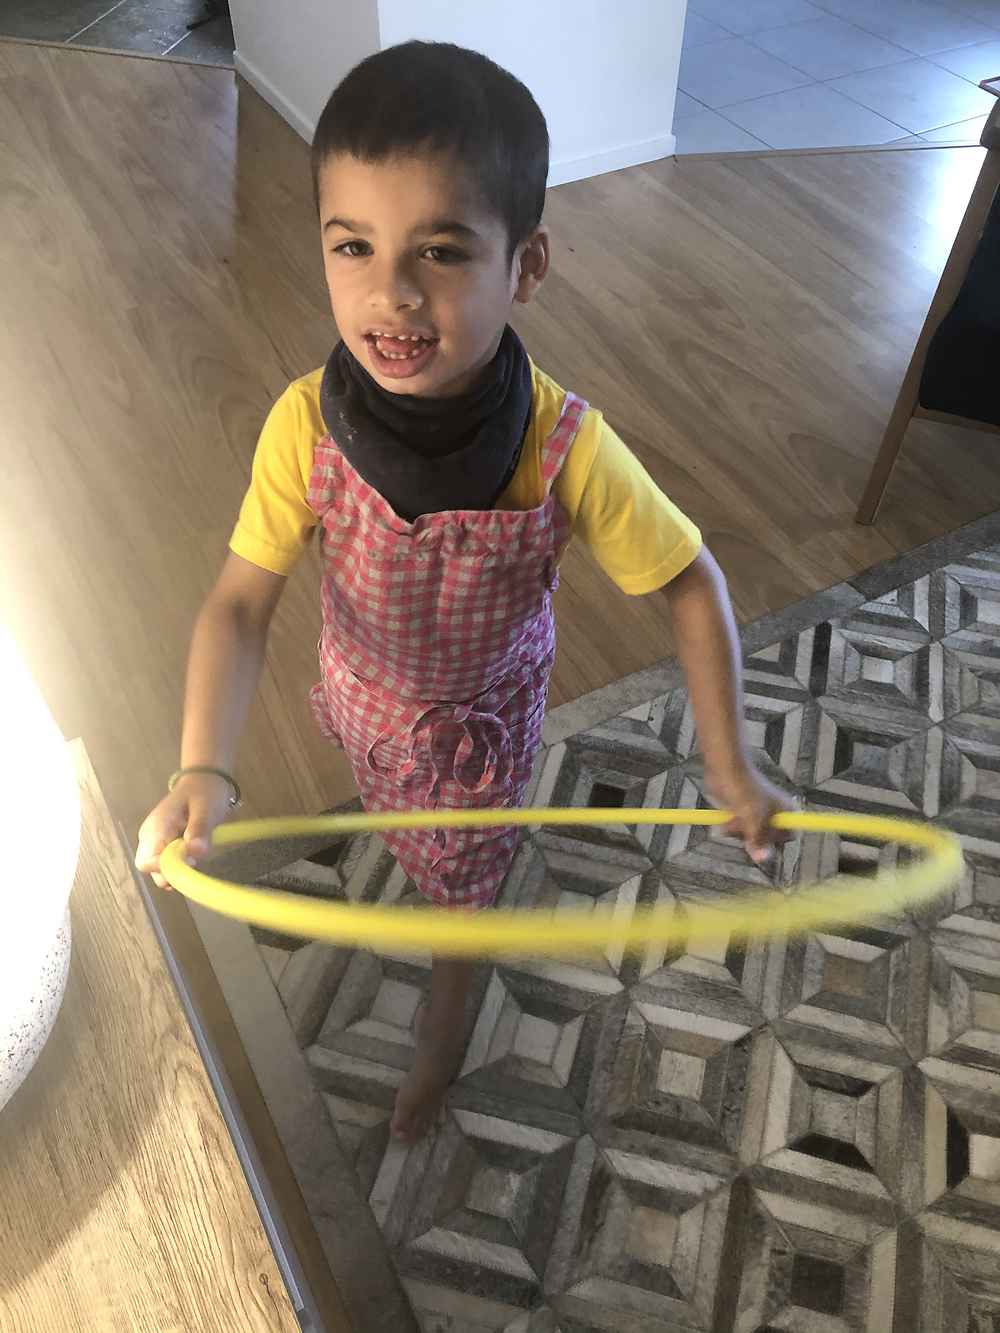 KEANU a young boy playing with a yellow hula hoop on a grey and white triangle patterned rug.